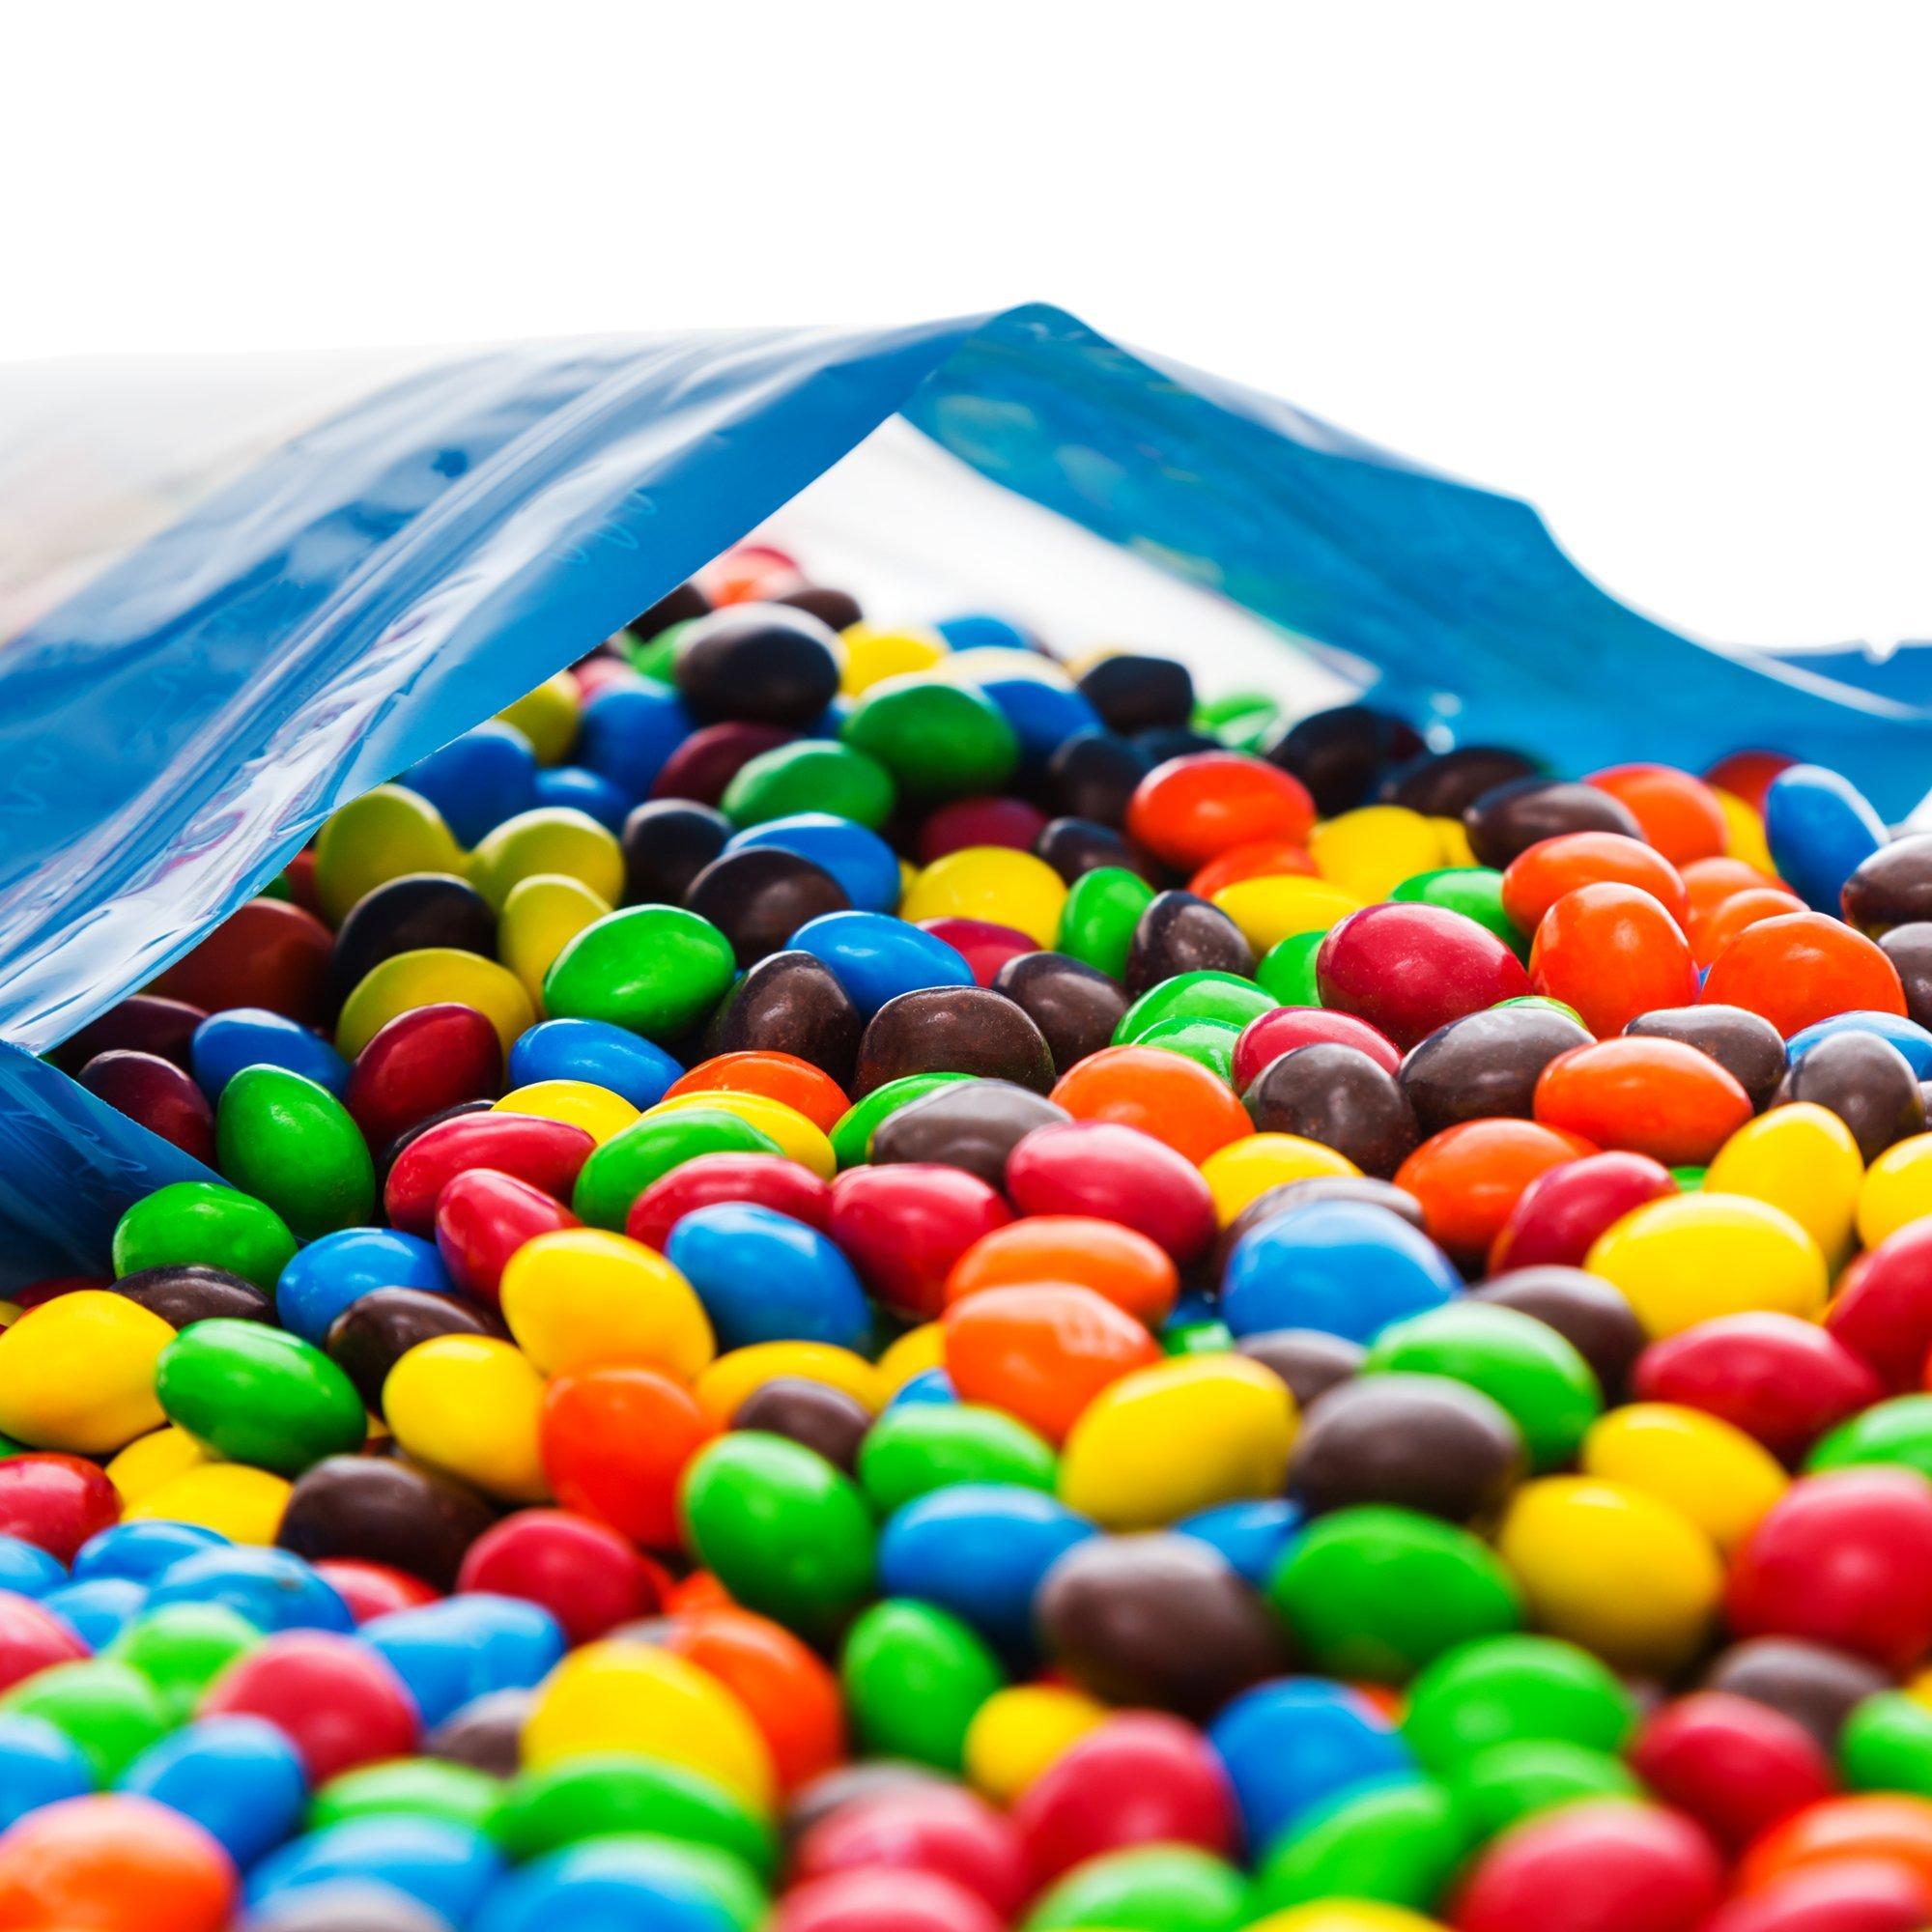 Bulk Peanut Butter M&Ms in Resealable Bomber Bag, Wholesale Peanut Candy Treats (5lb Bag) by Fast Fresh Nuts (Image #2)